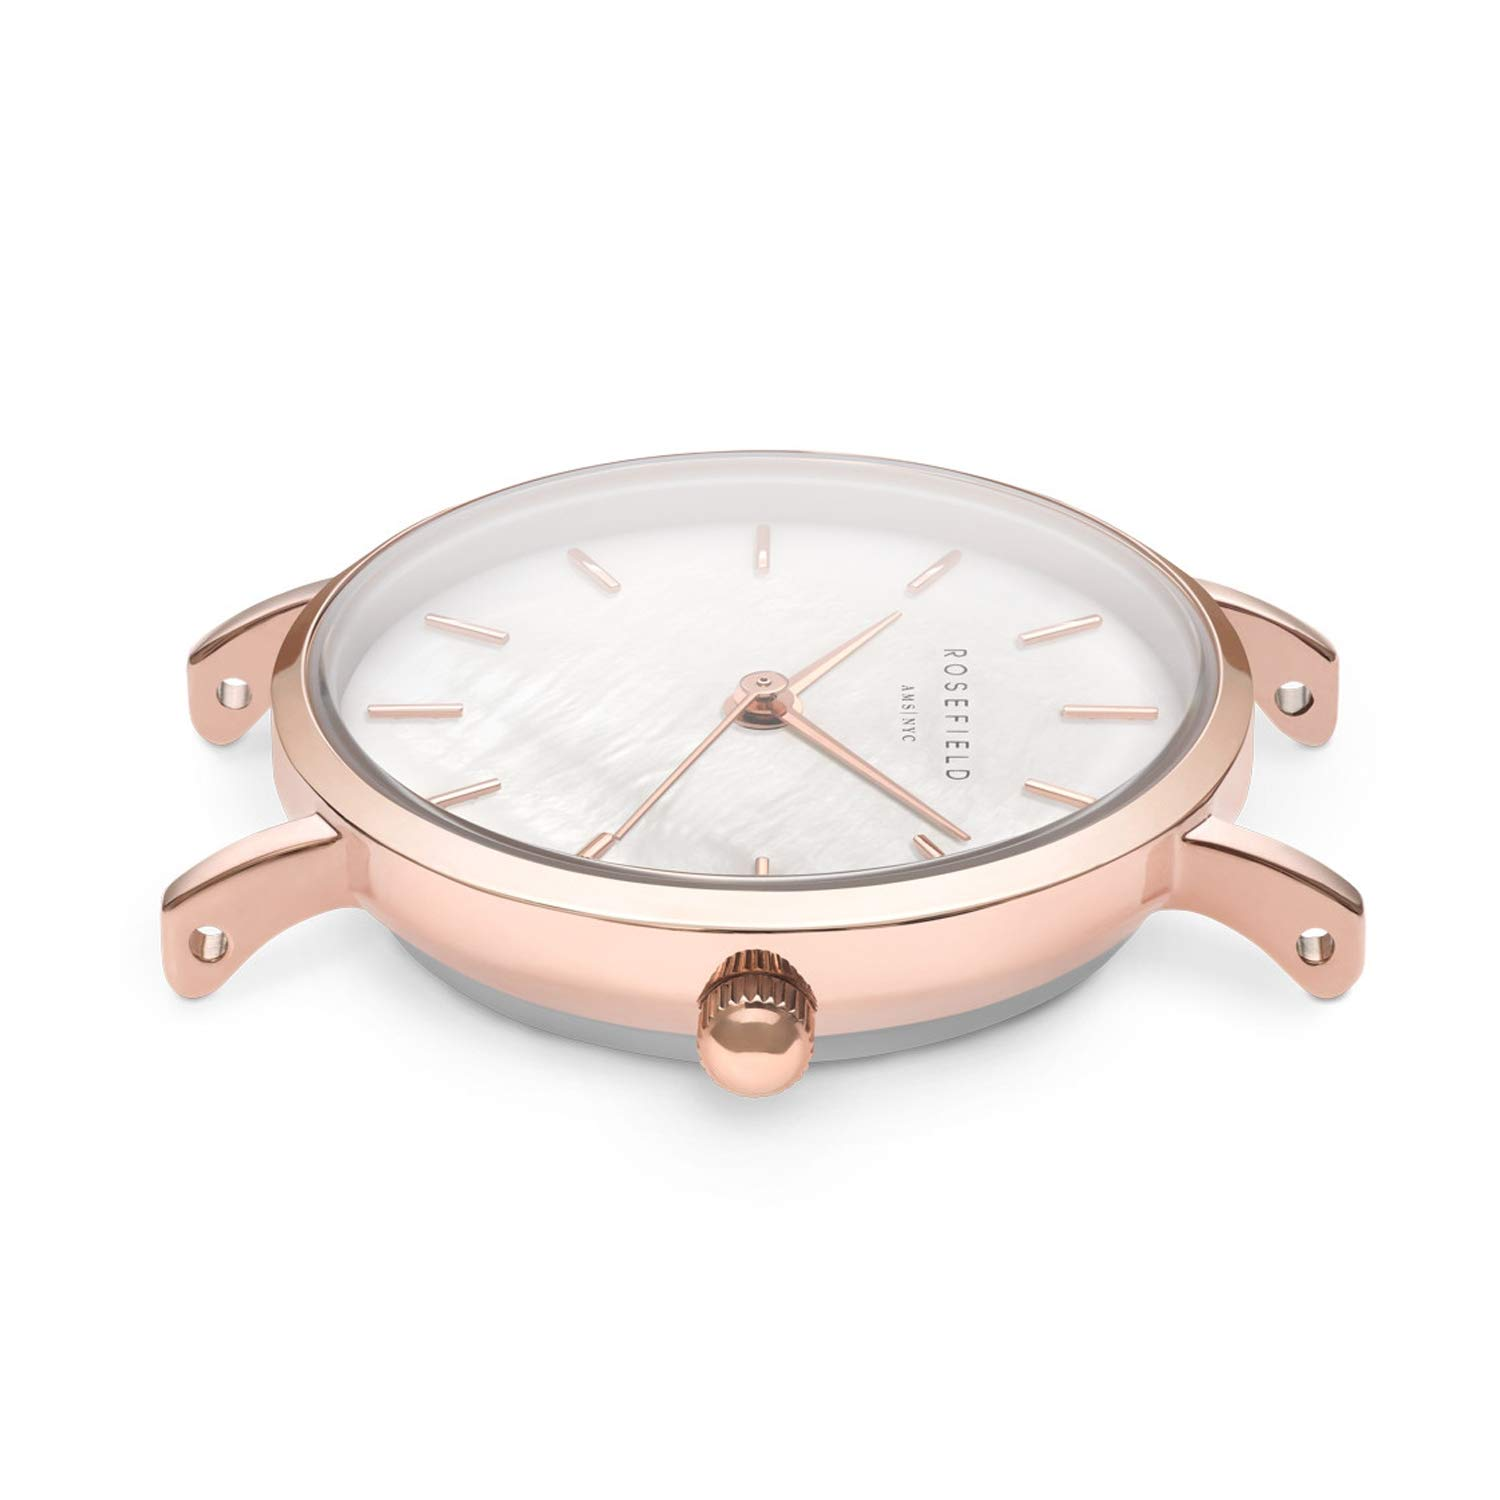 265Amazon 26wr Edit Rosefield esRelojes Small qSMVjzGUpL